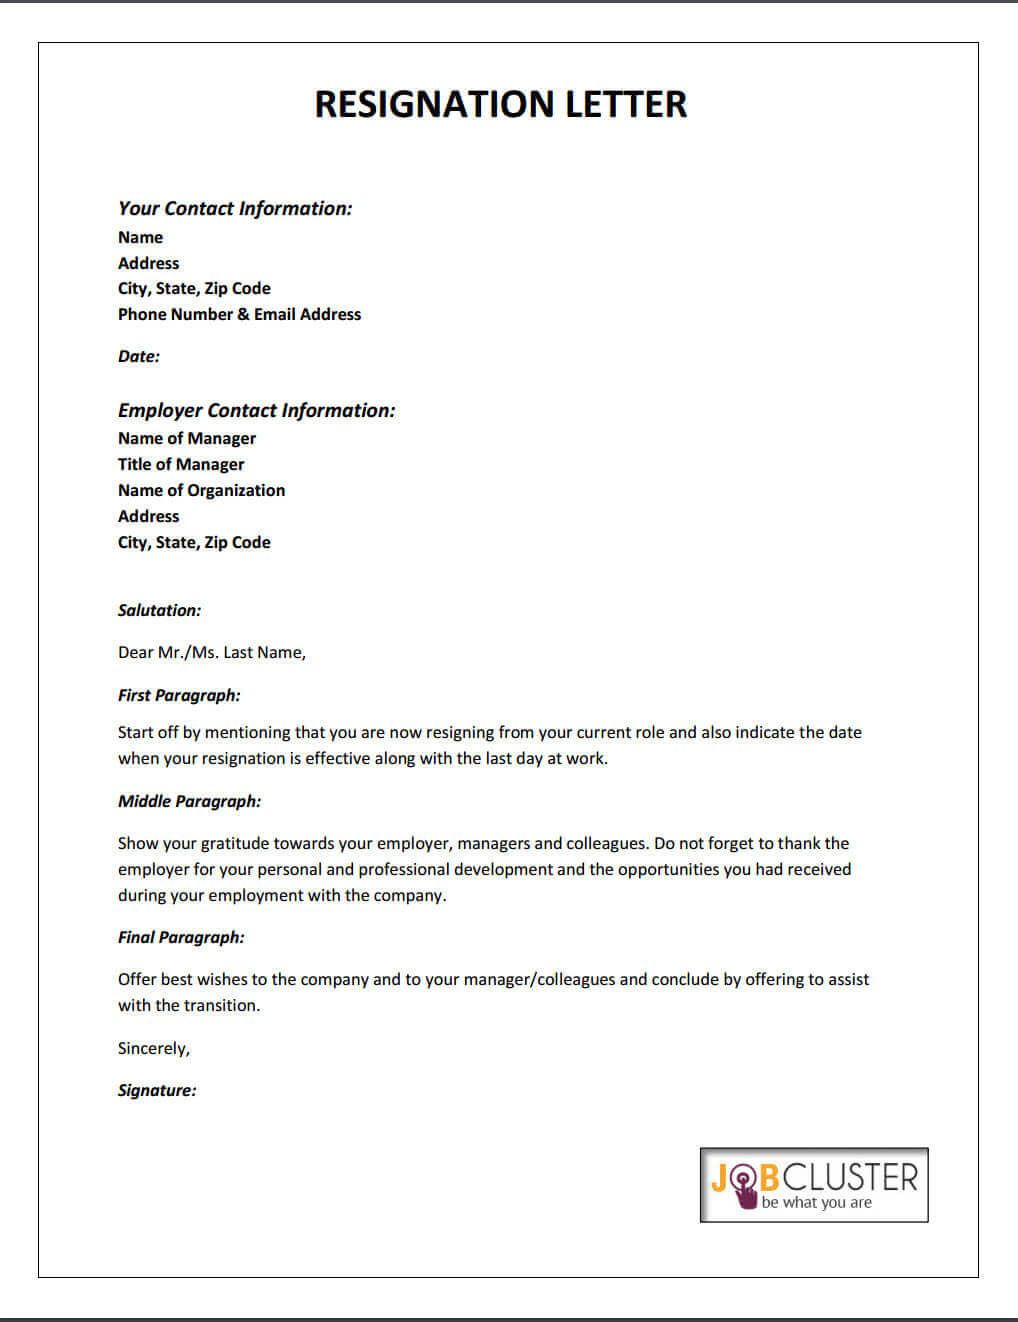 Resignation Letter Template.jpg | Career Advice, Resume Tips ...